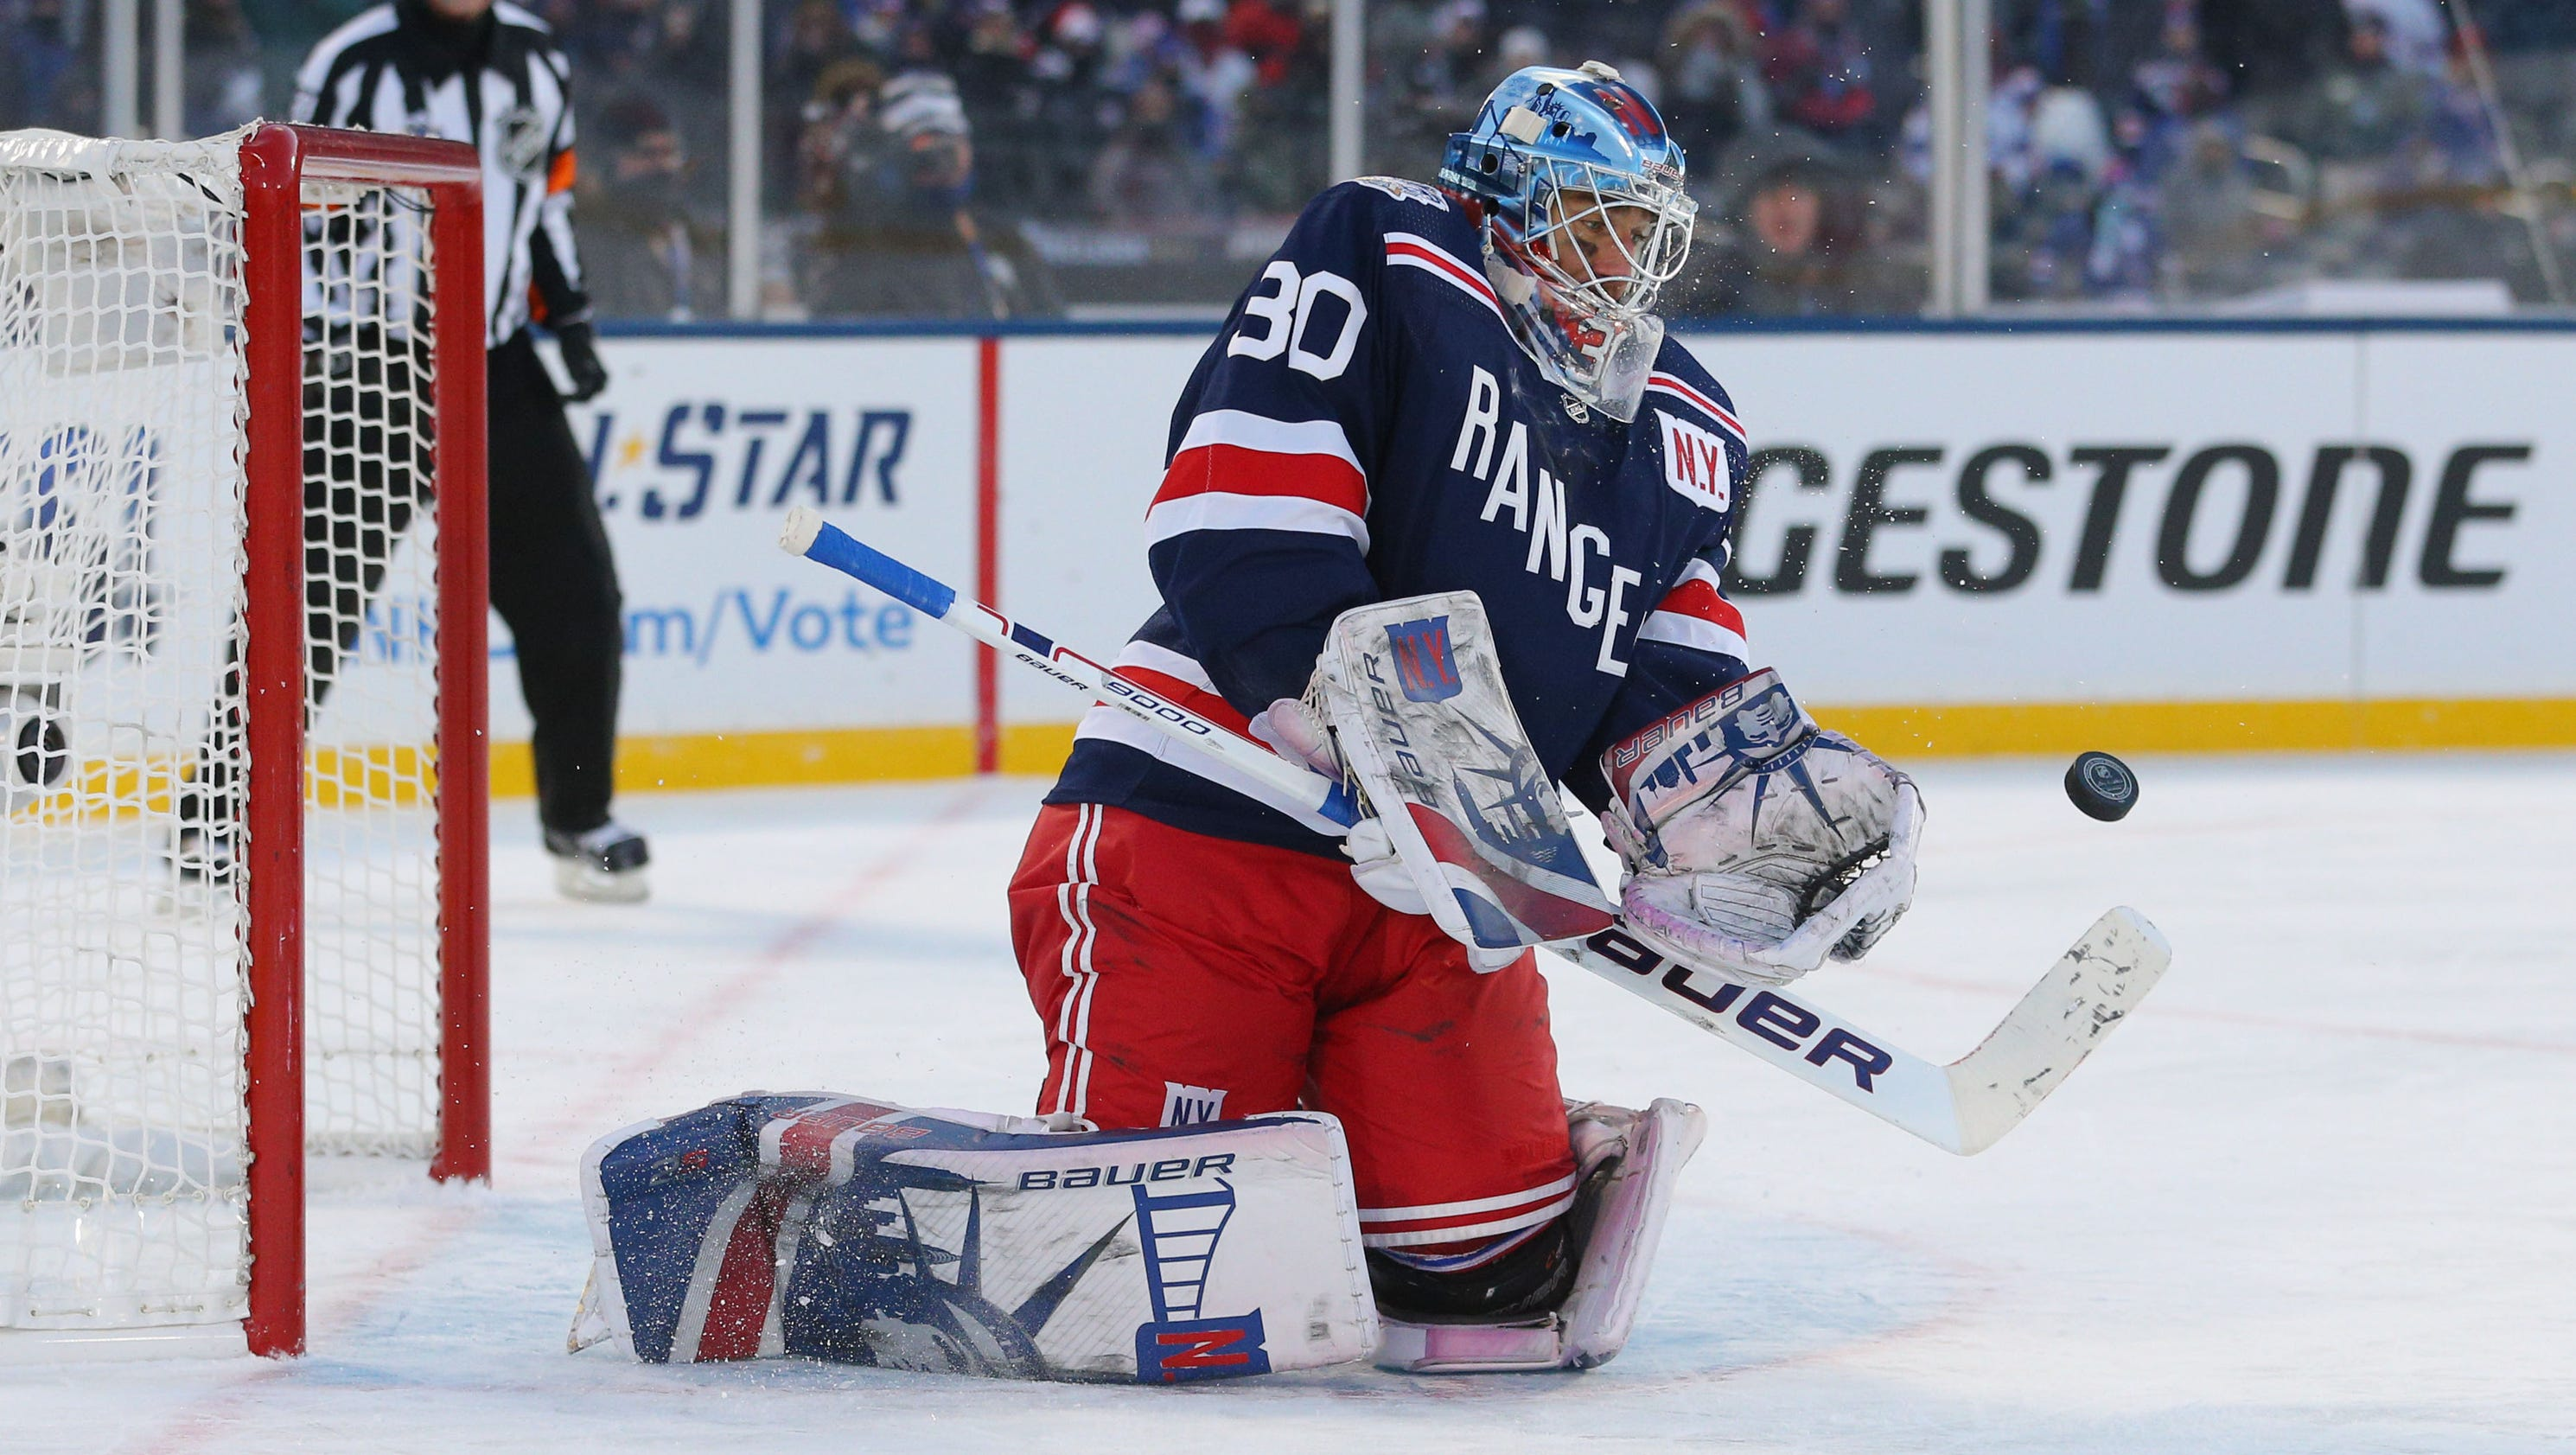 J.T. Miller's overtime goal lifts Rangers past Sabres in Winter Classic